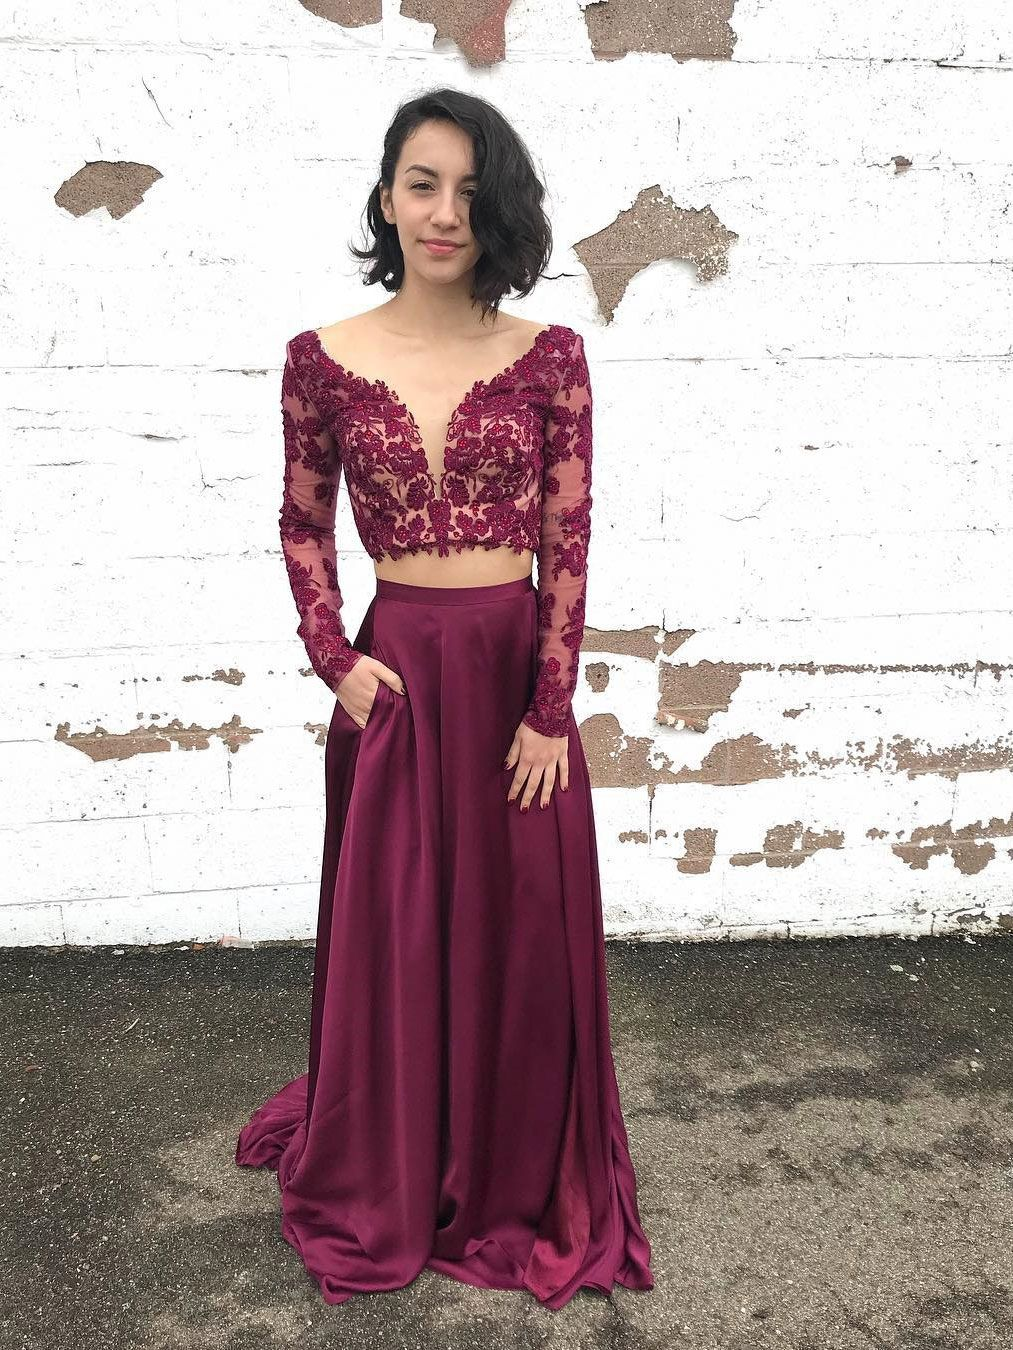 32054a2a37 Long Sleeve Two Piece Lace Prom Dresses Purple See Through Beaded Formal  Dresses  eveningdresses  eveninggowns  formaleveningdresses  promdresses   ballgowns ...